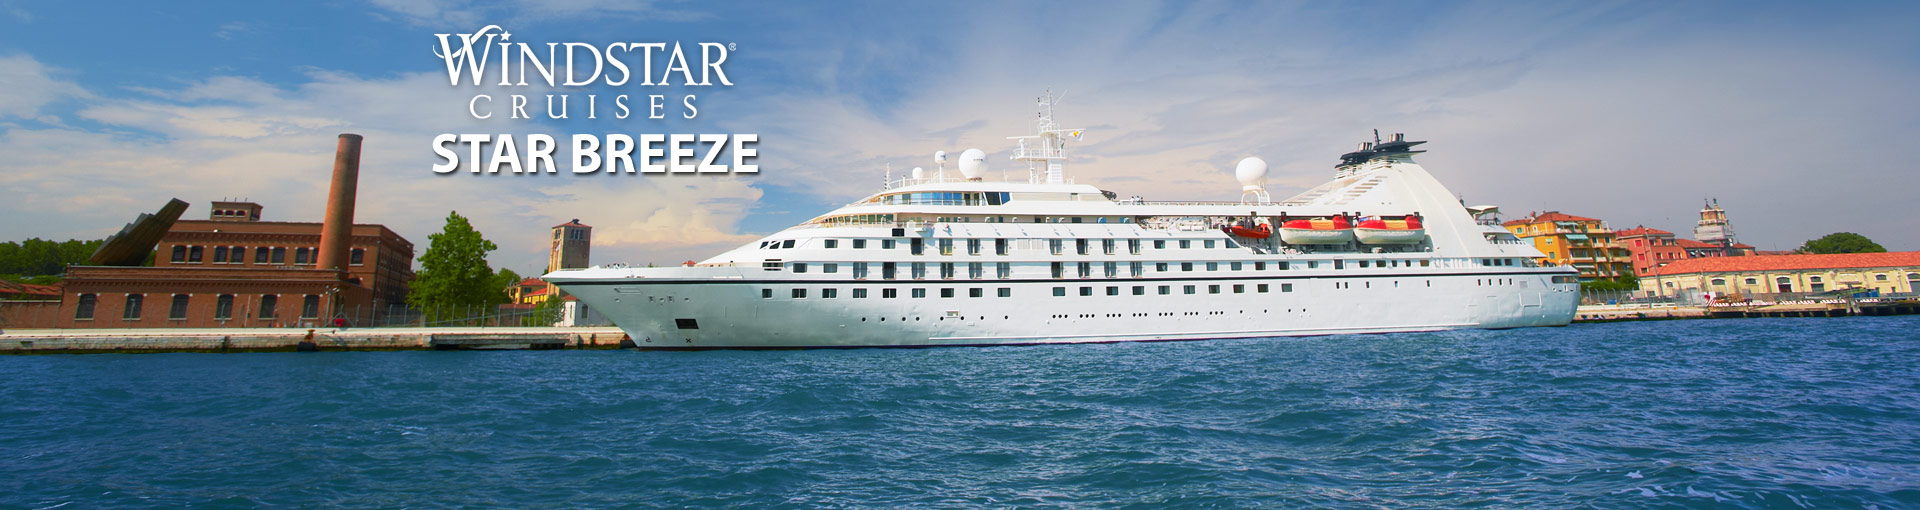 Windstar Cruises Star Breeze Cruise Ship